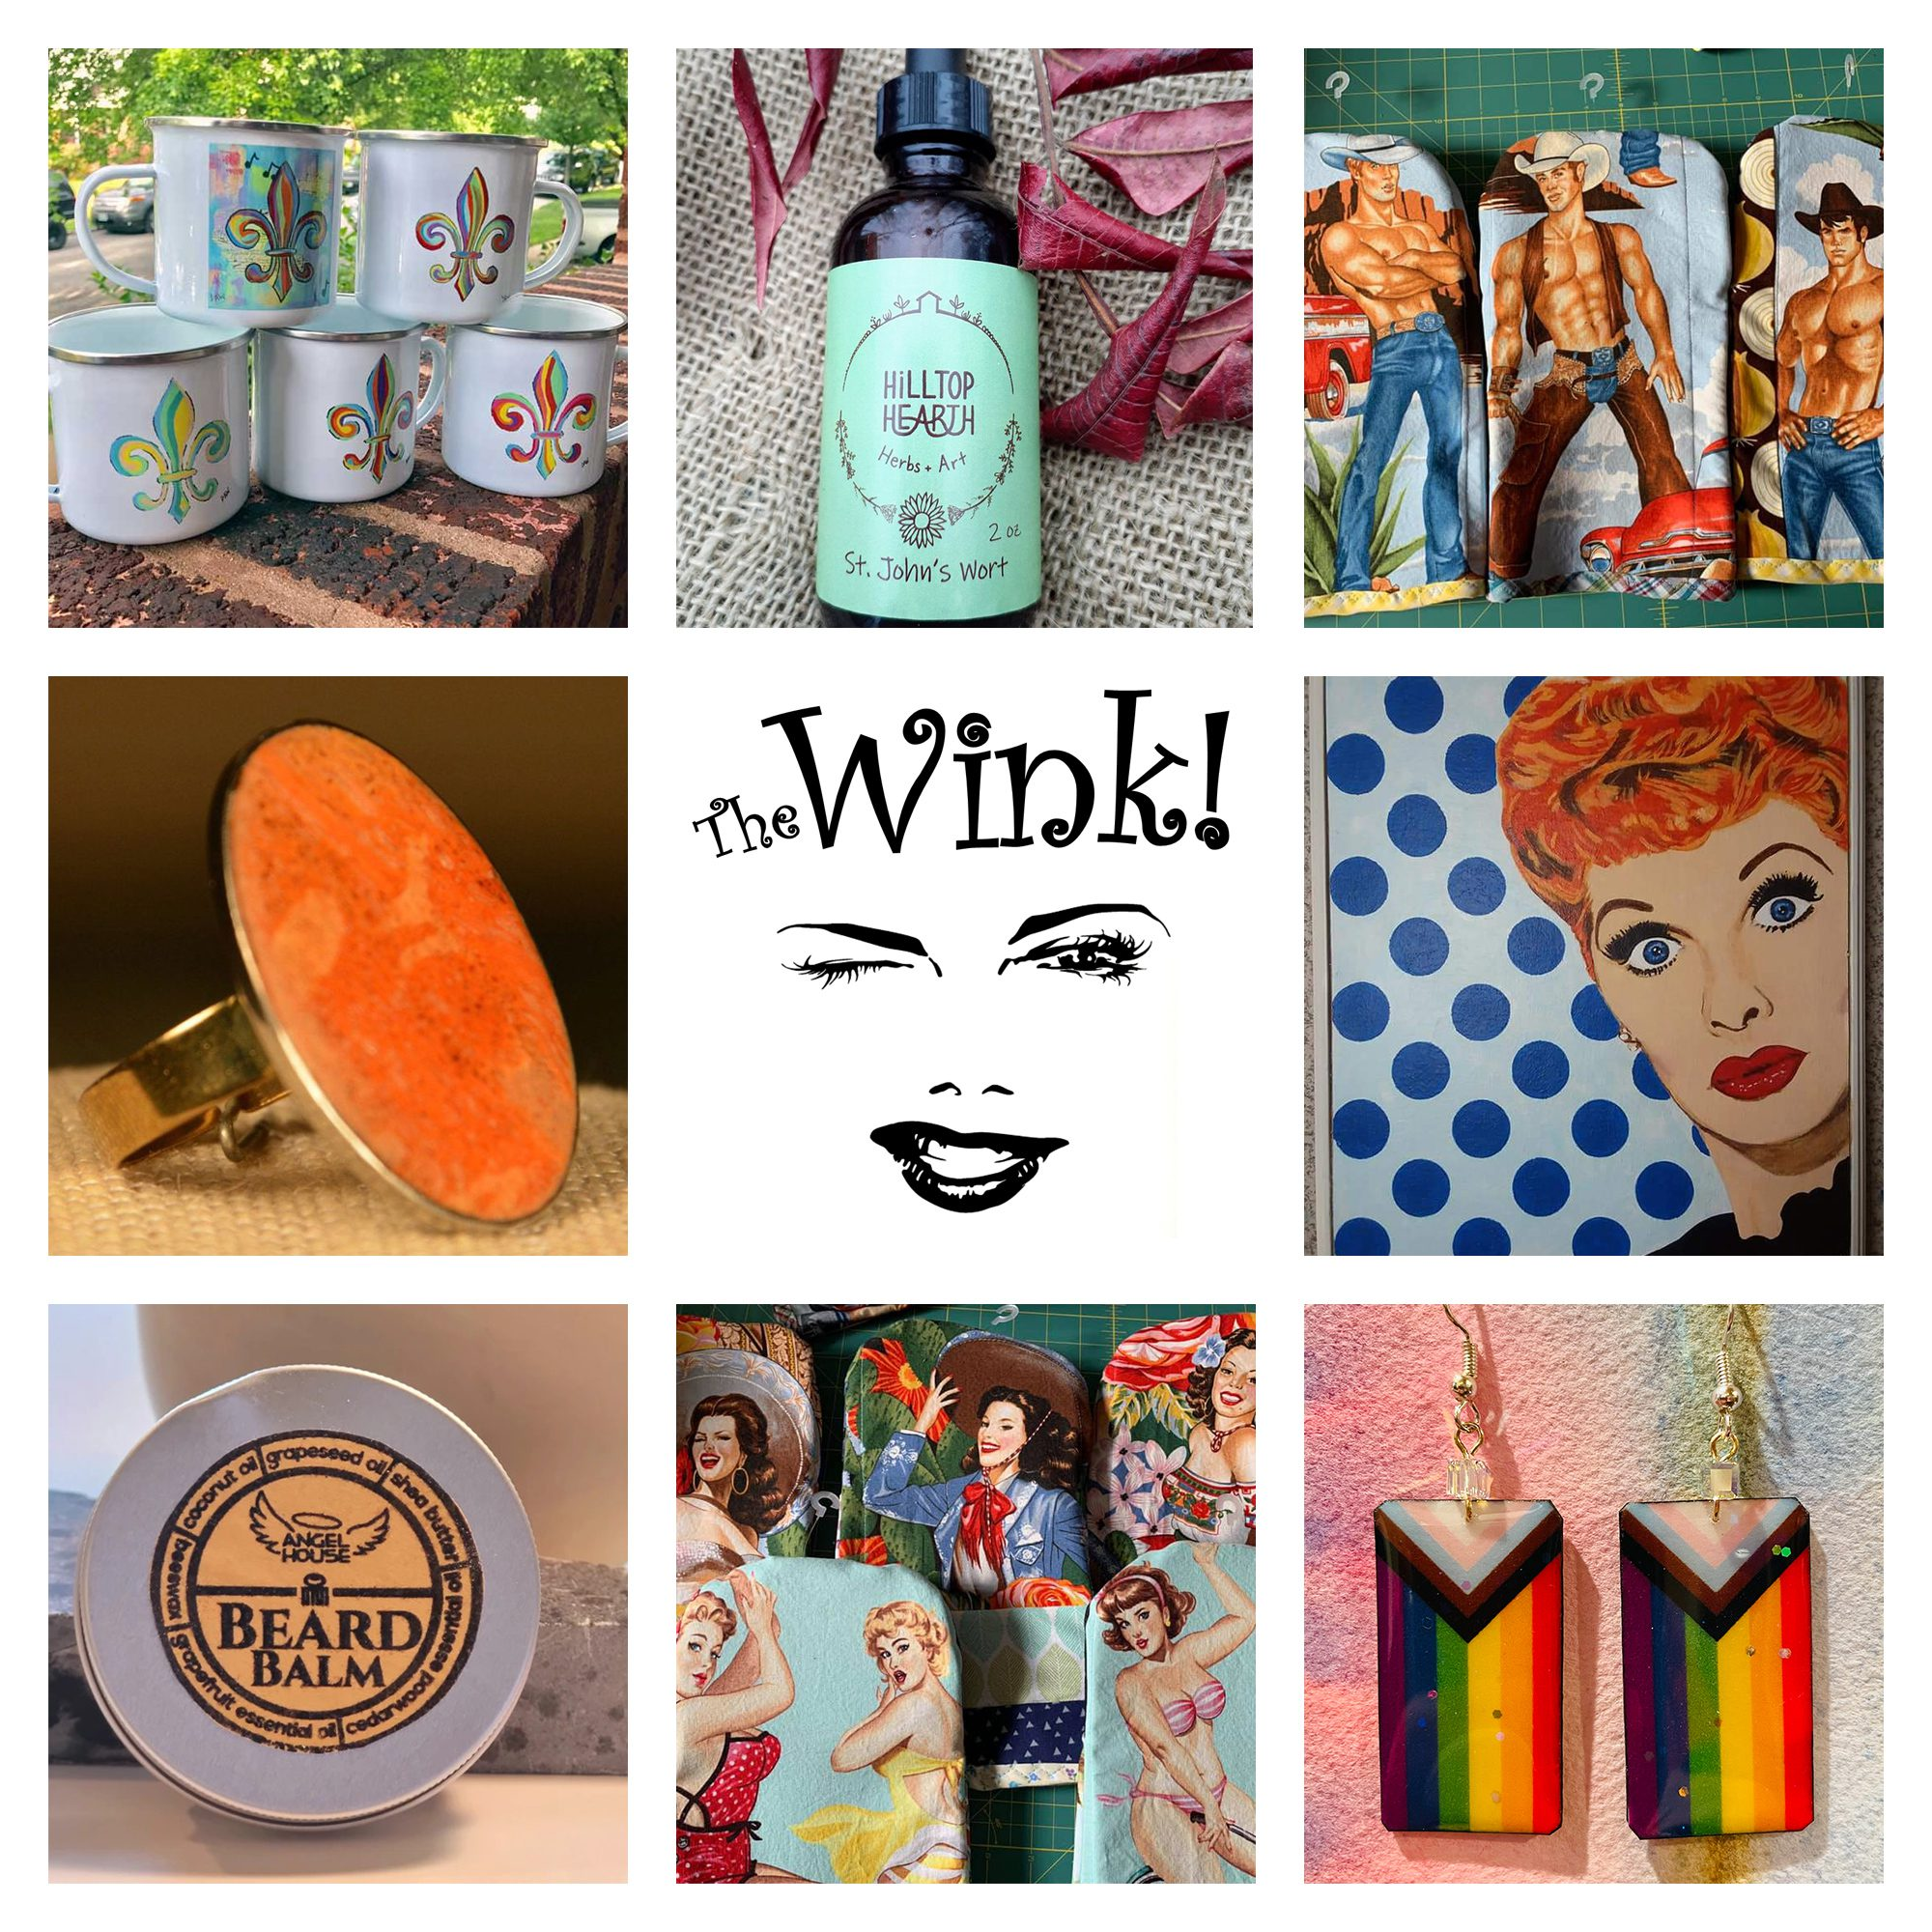 Products available at The Wink! in Downtown Dutchtown, St. Louis, MO. Offerings include jewelry, housewares, beauty products, art, and more.